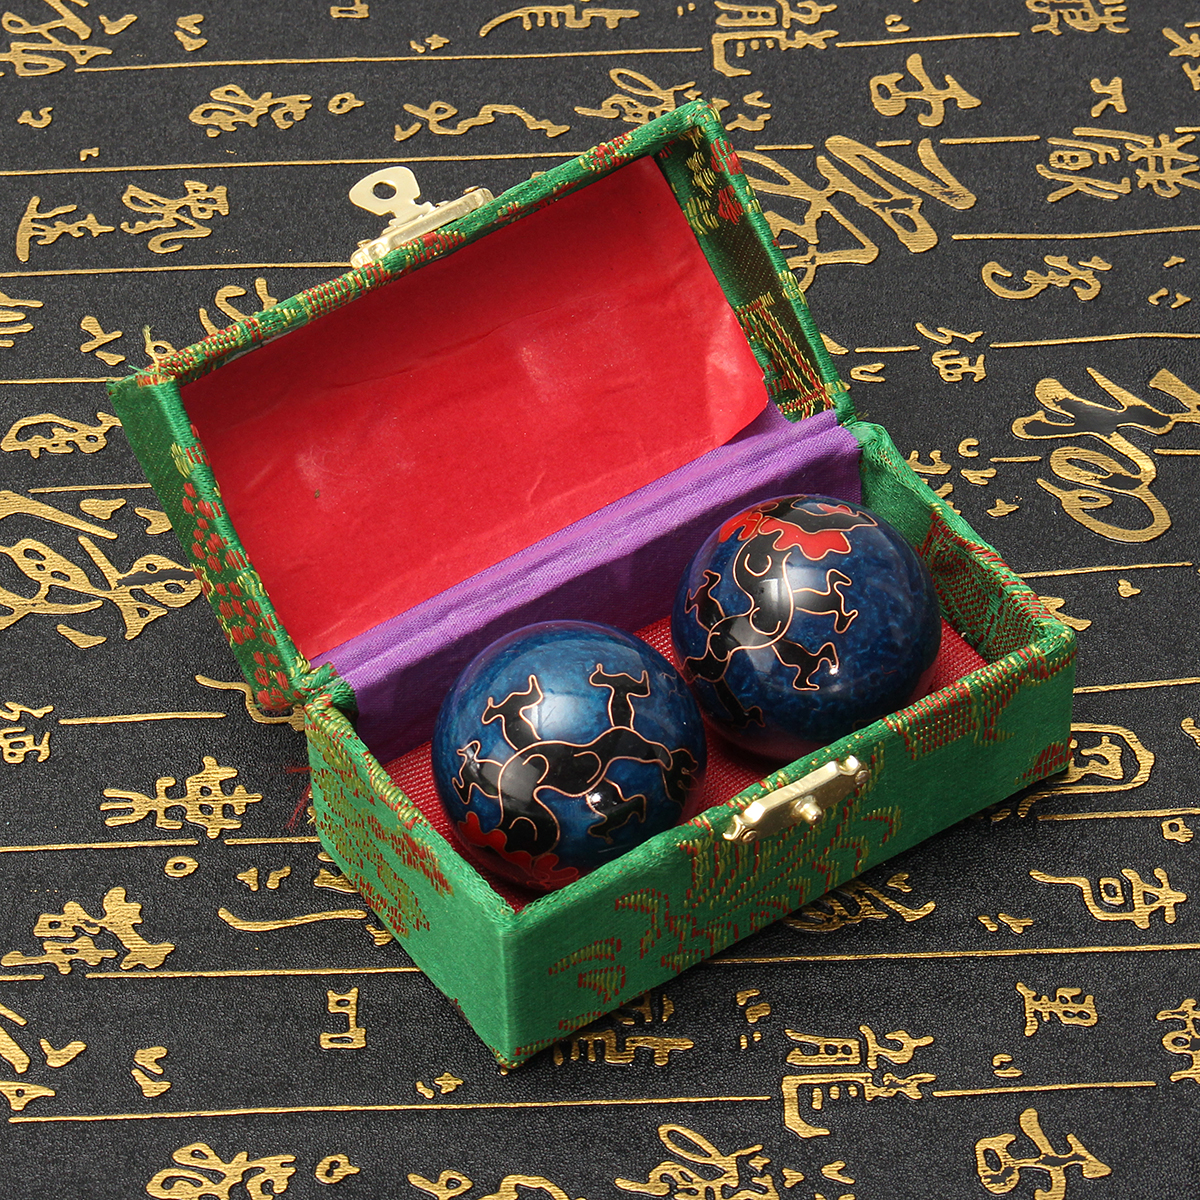 2pcs 42mm Chinese Health Dragon Exercise Stress Relaxation Therapy Massage Baoding Ball